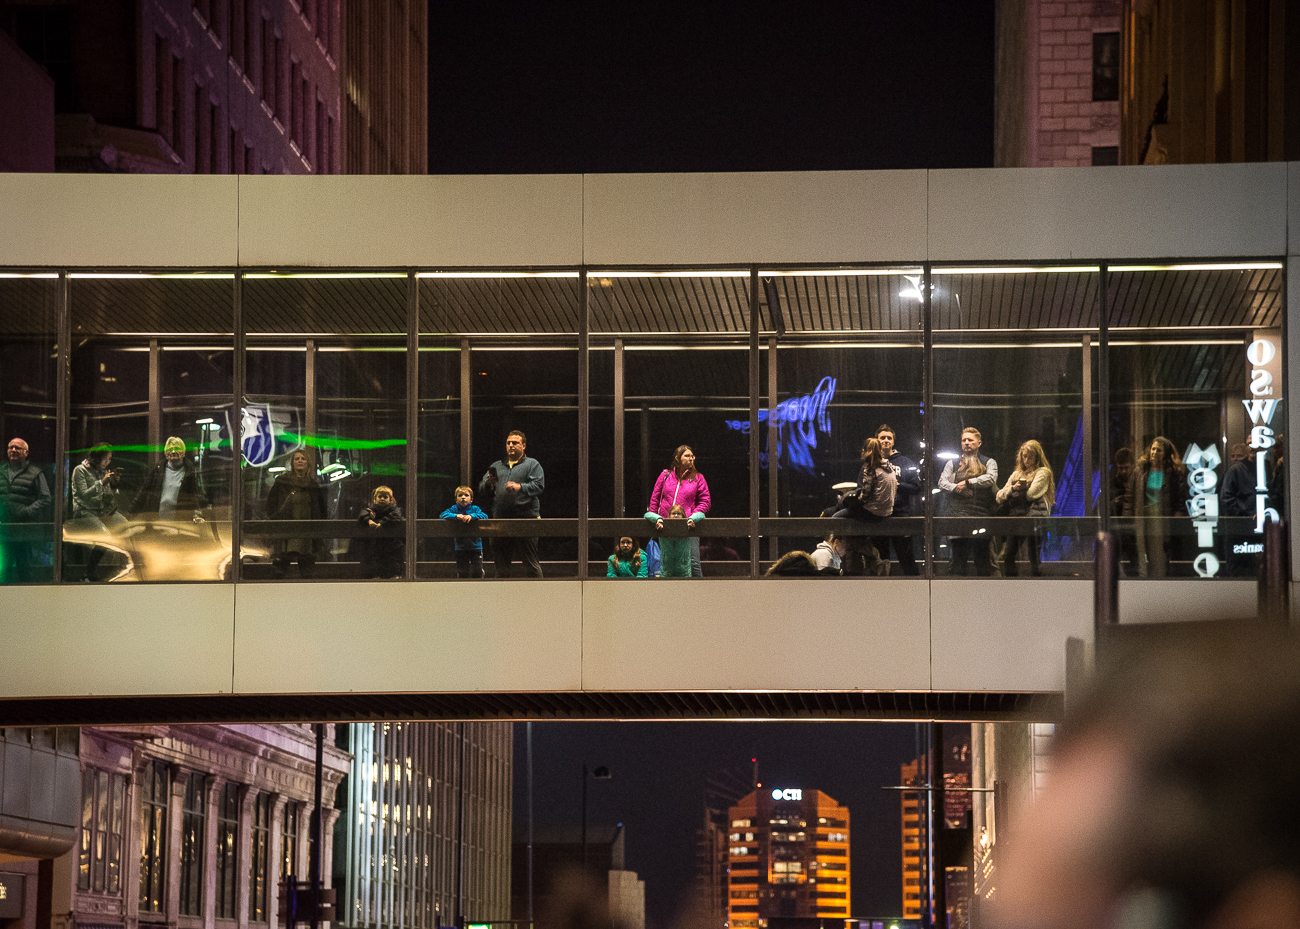 <p>Some folks got creative with how they'd watch the tree lighting. / Image: Phil Armstrong, Cincinnati Refined // Published: 11.24.18</p>